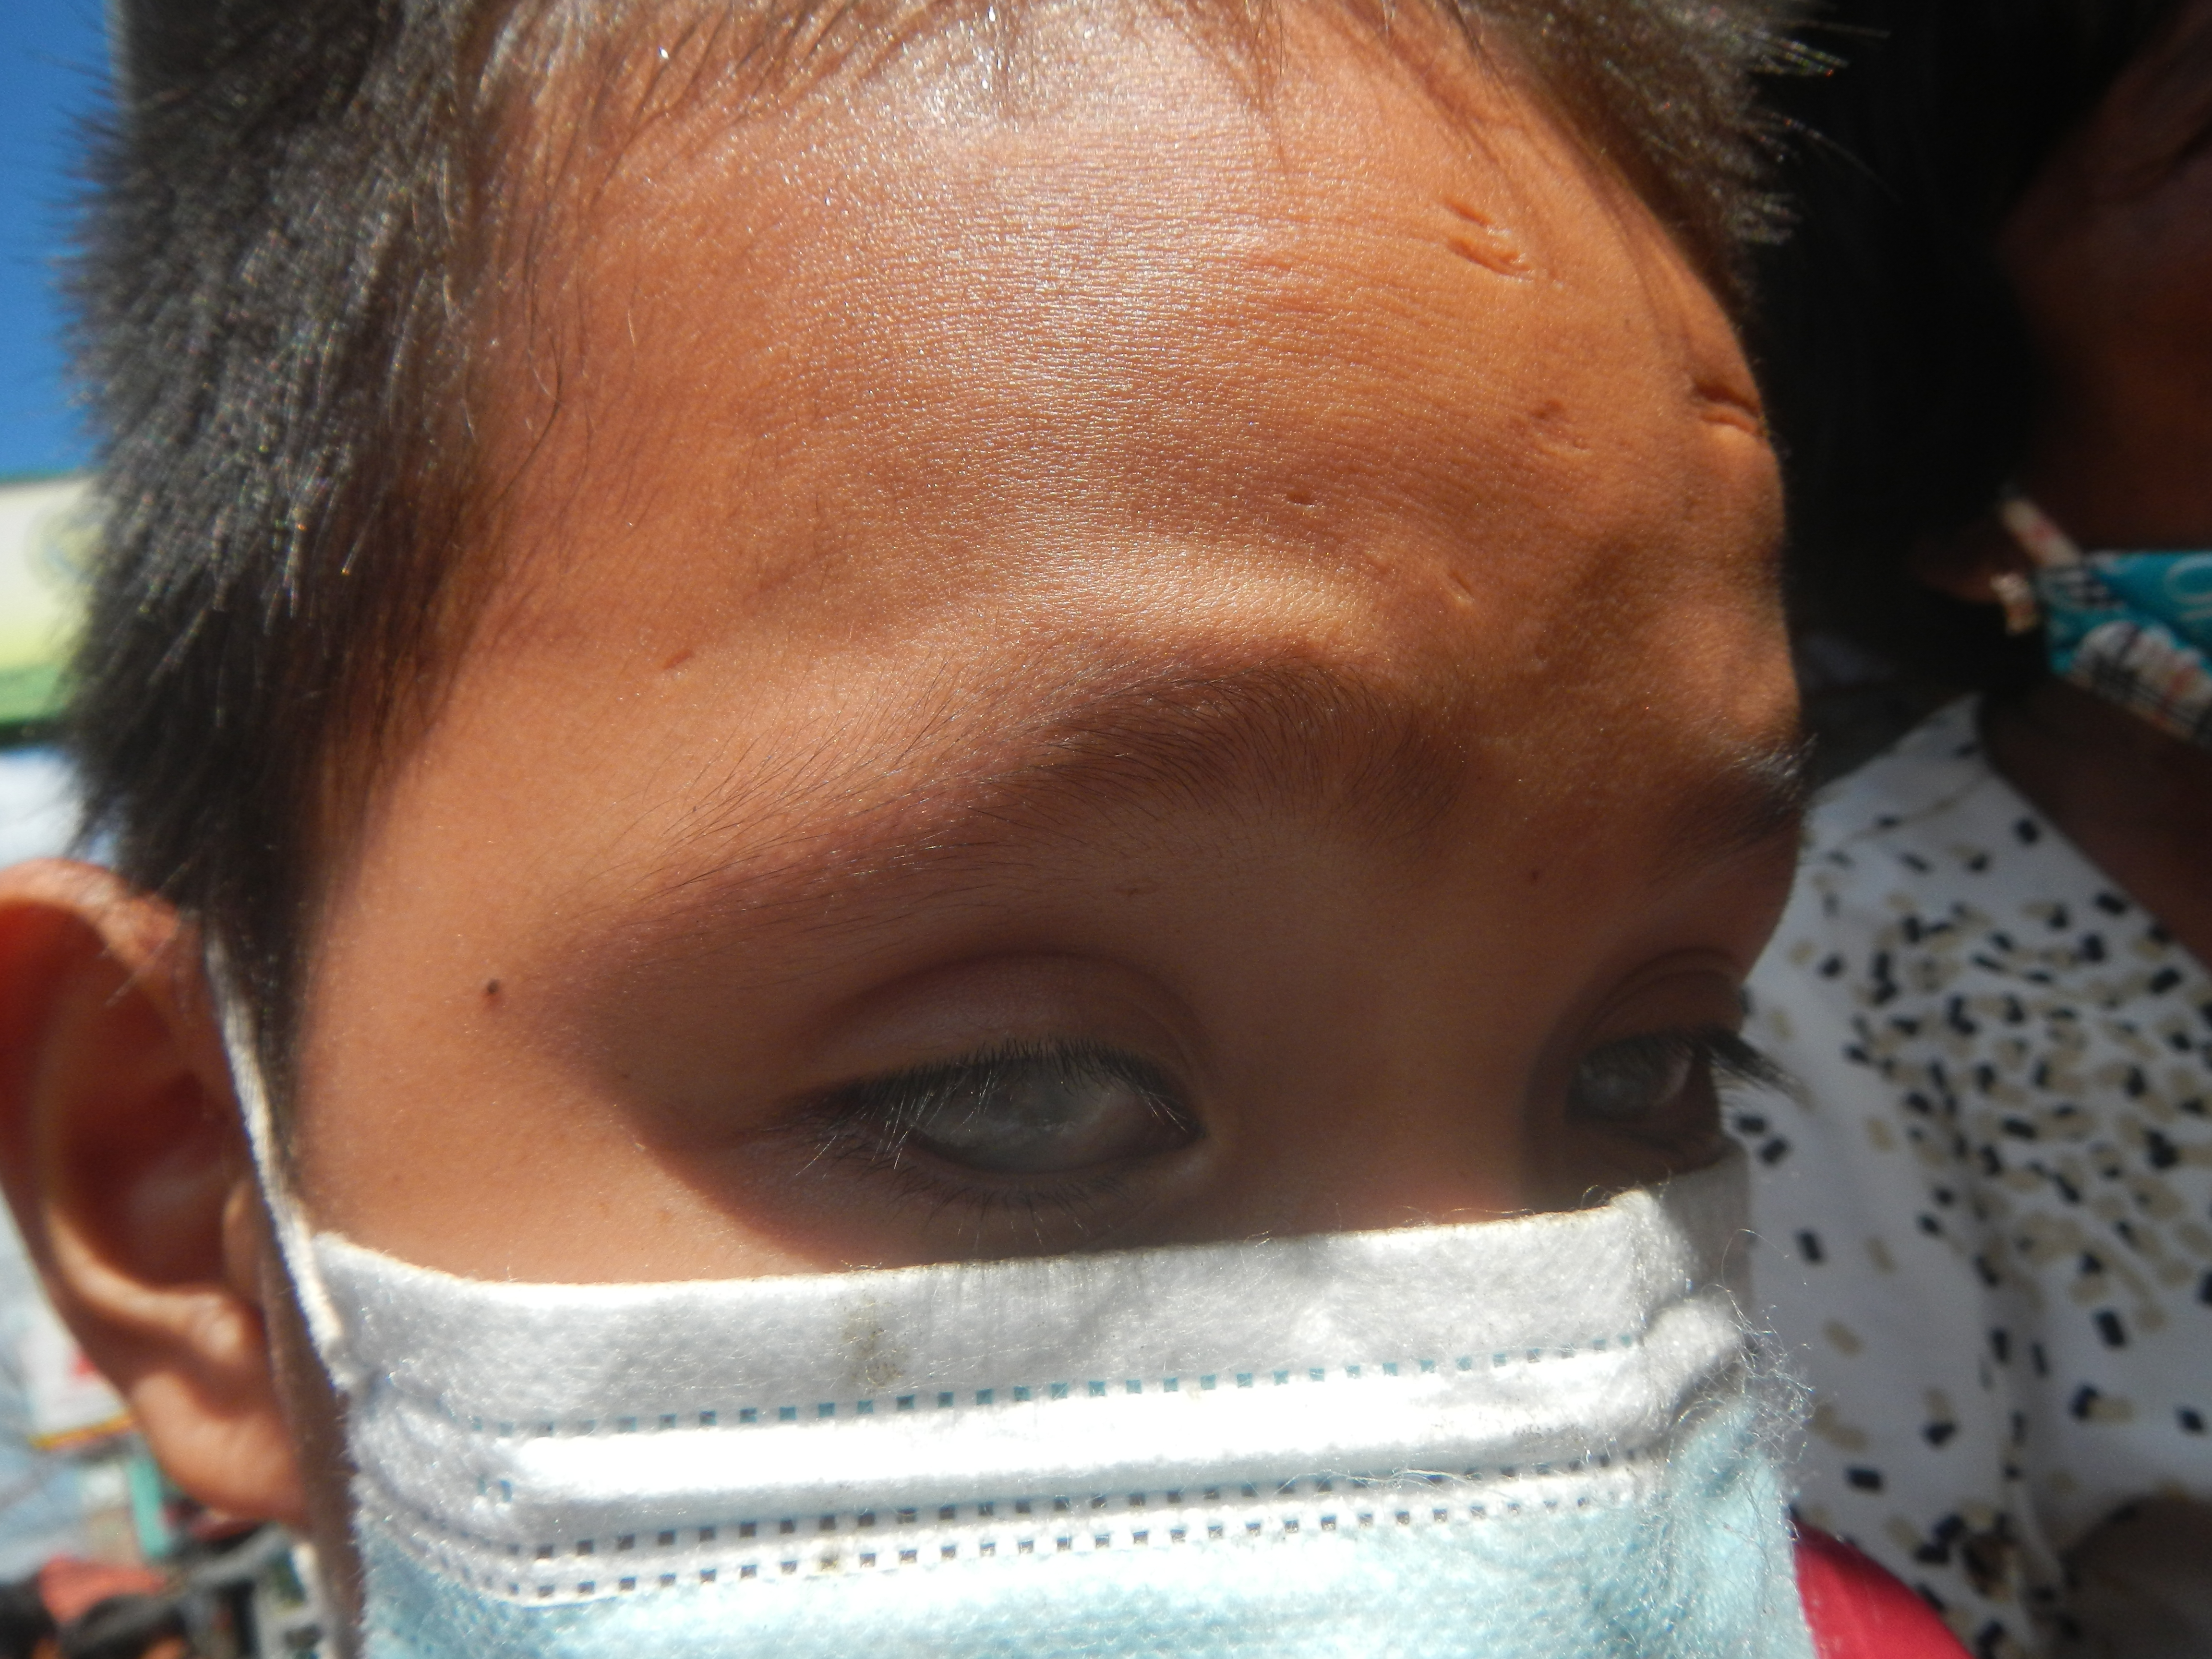 2219Boys of the Philippines with congenital childhood blindness and amputation birth defect 11.jpg